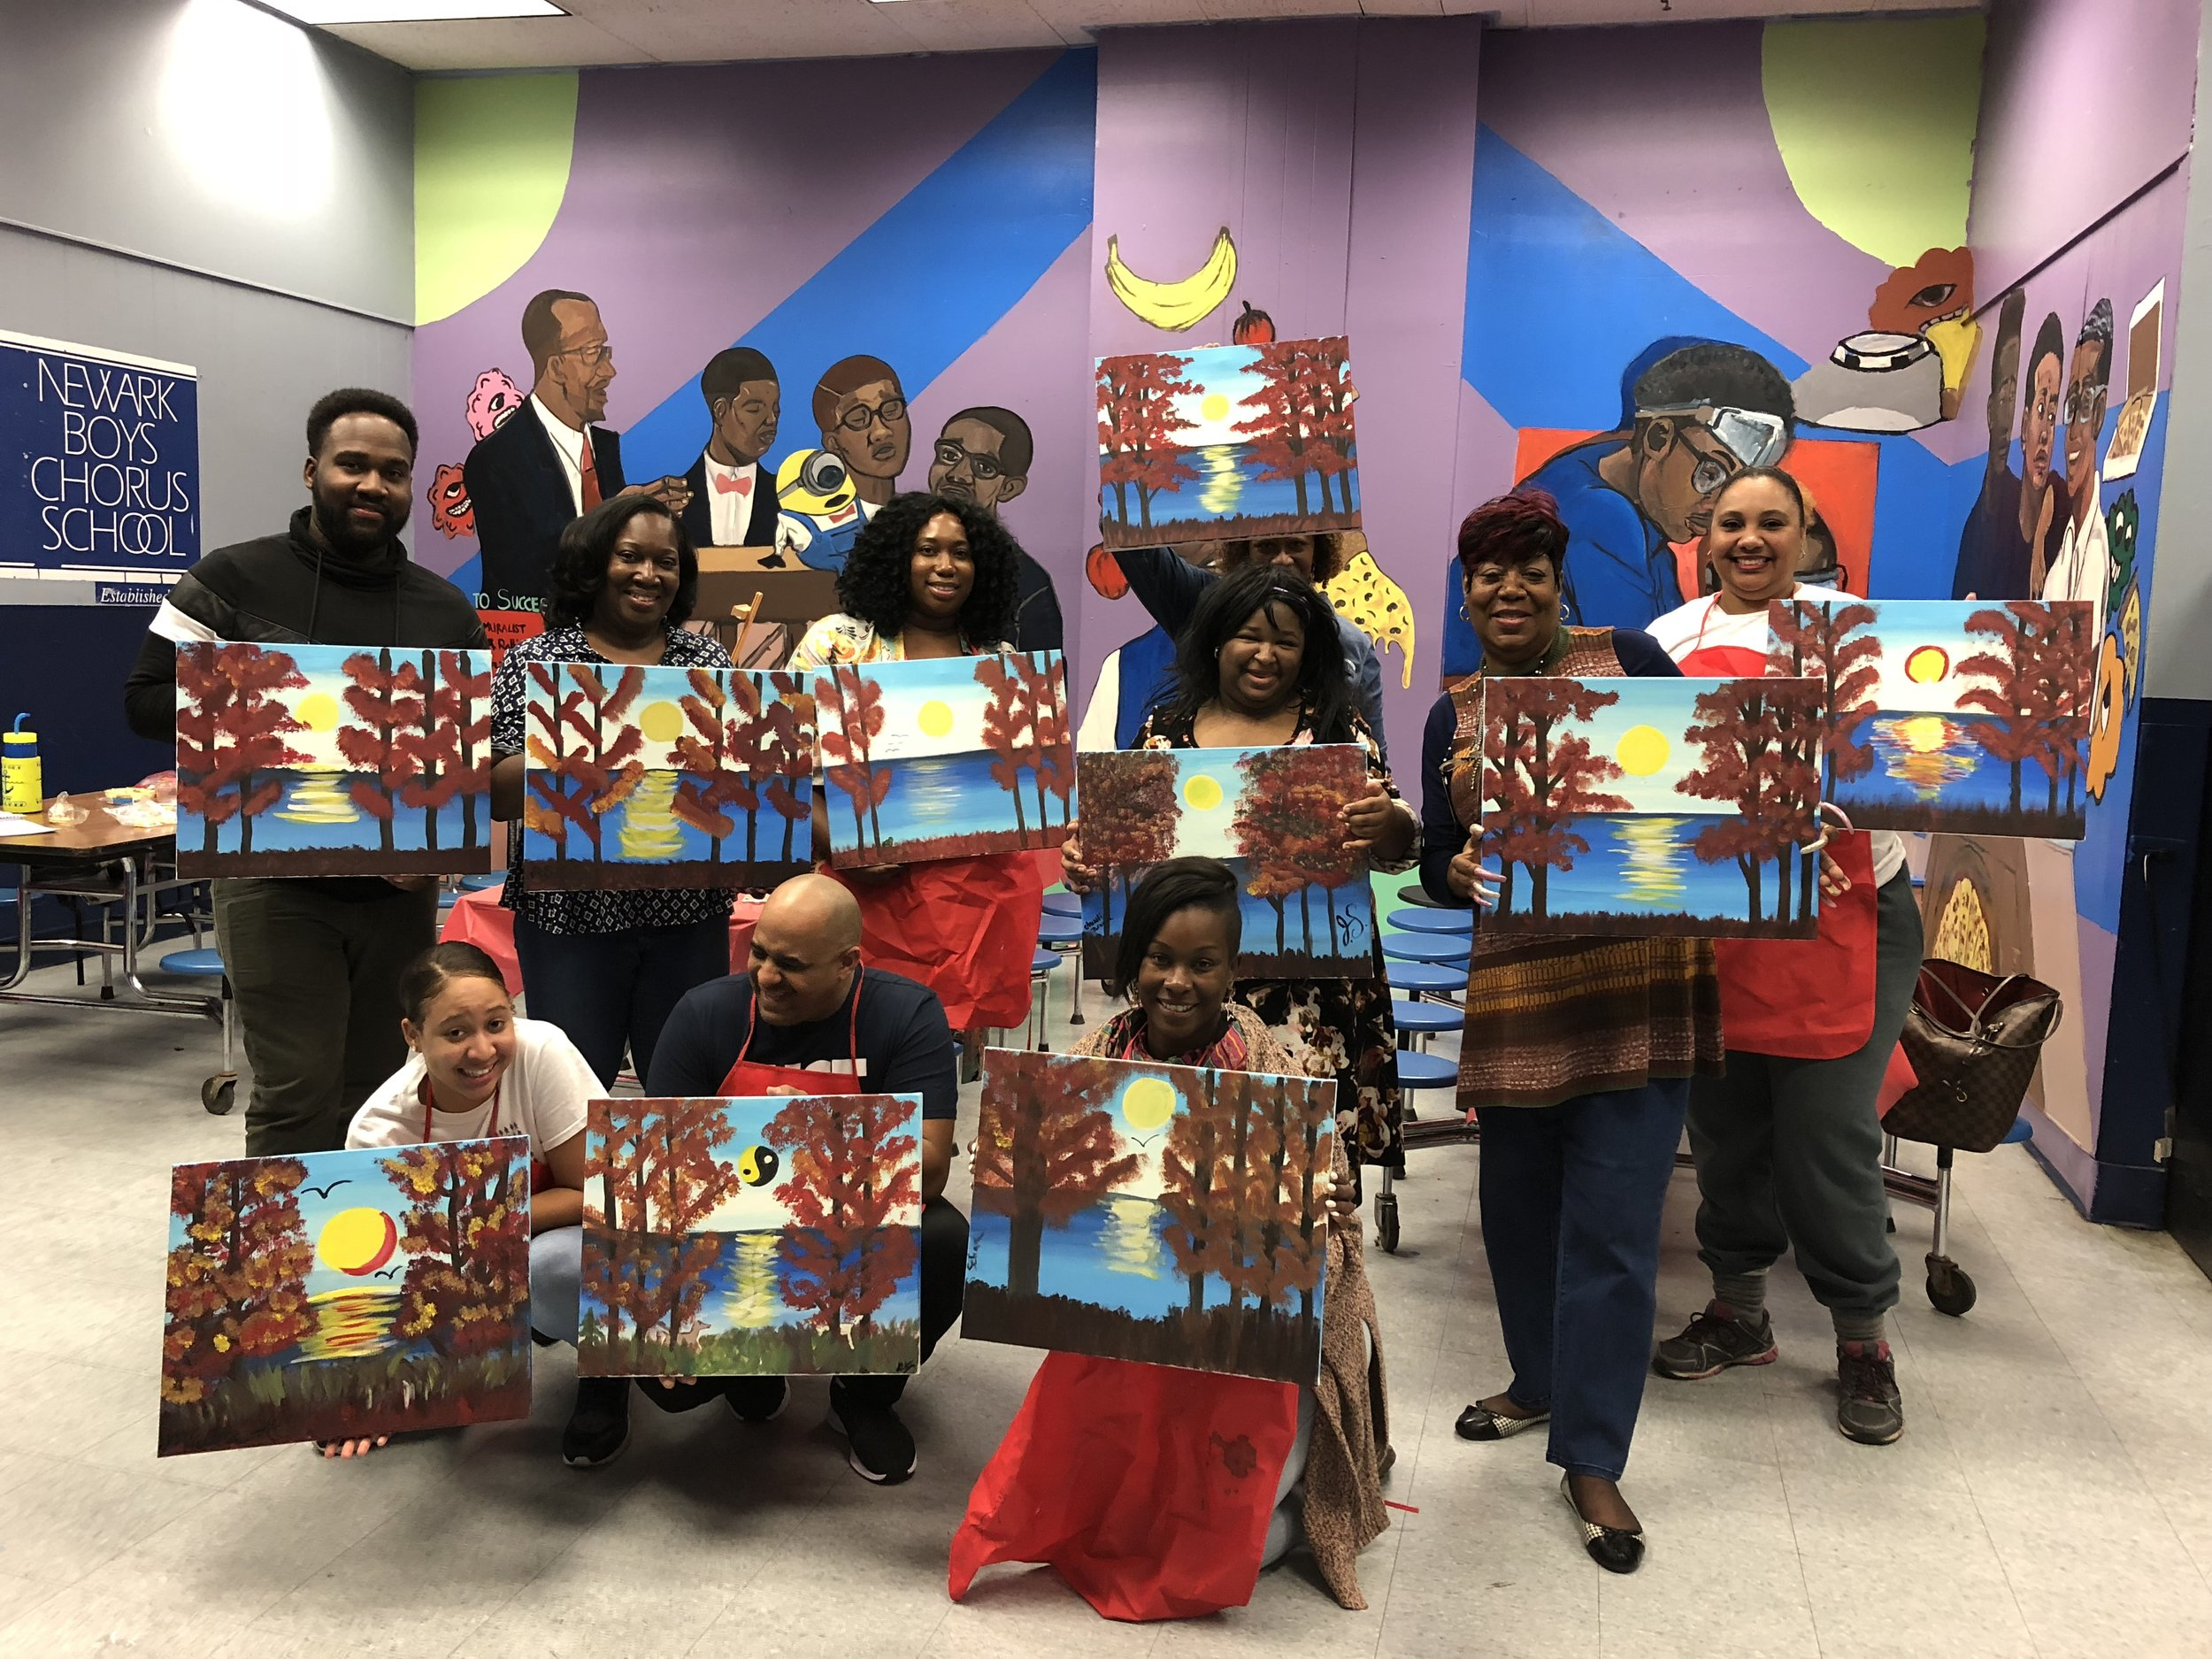 PAC Paint & Sip Fundraiser - Thanks to our NBCS Science Teacher and resident artist Krystina Natal, parents had a wonderful time at the PAC's first fundraiser event of the year.